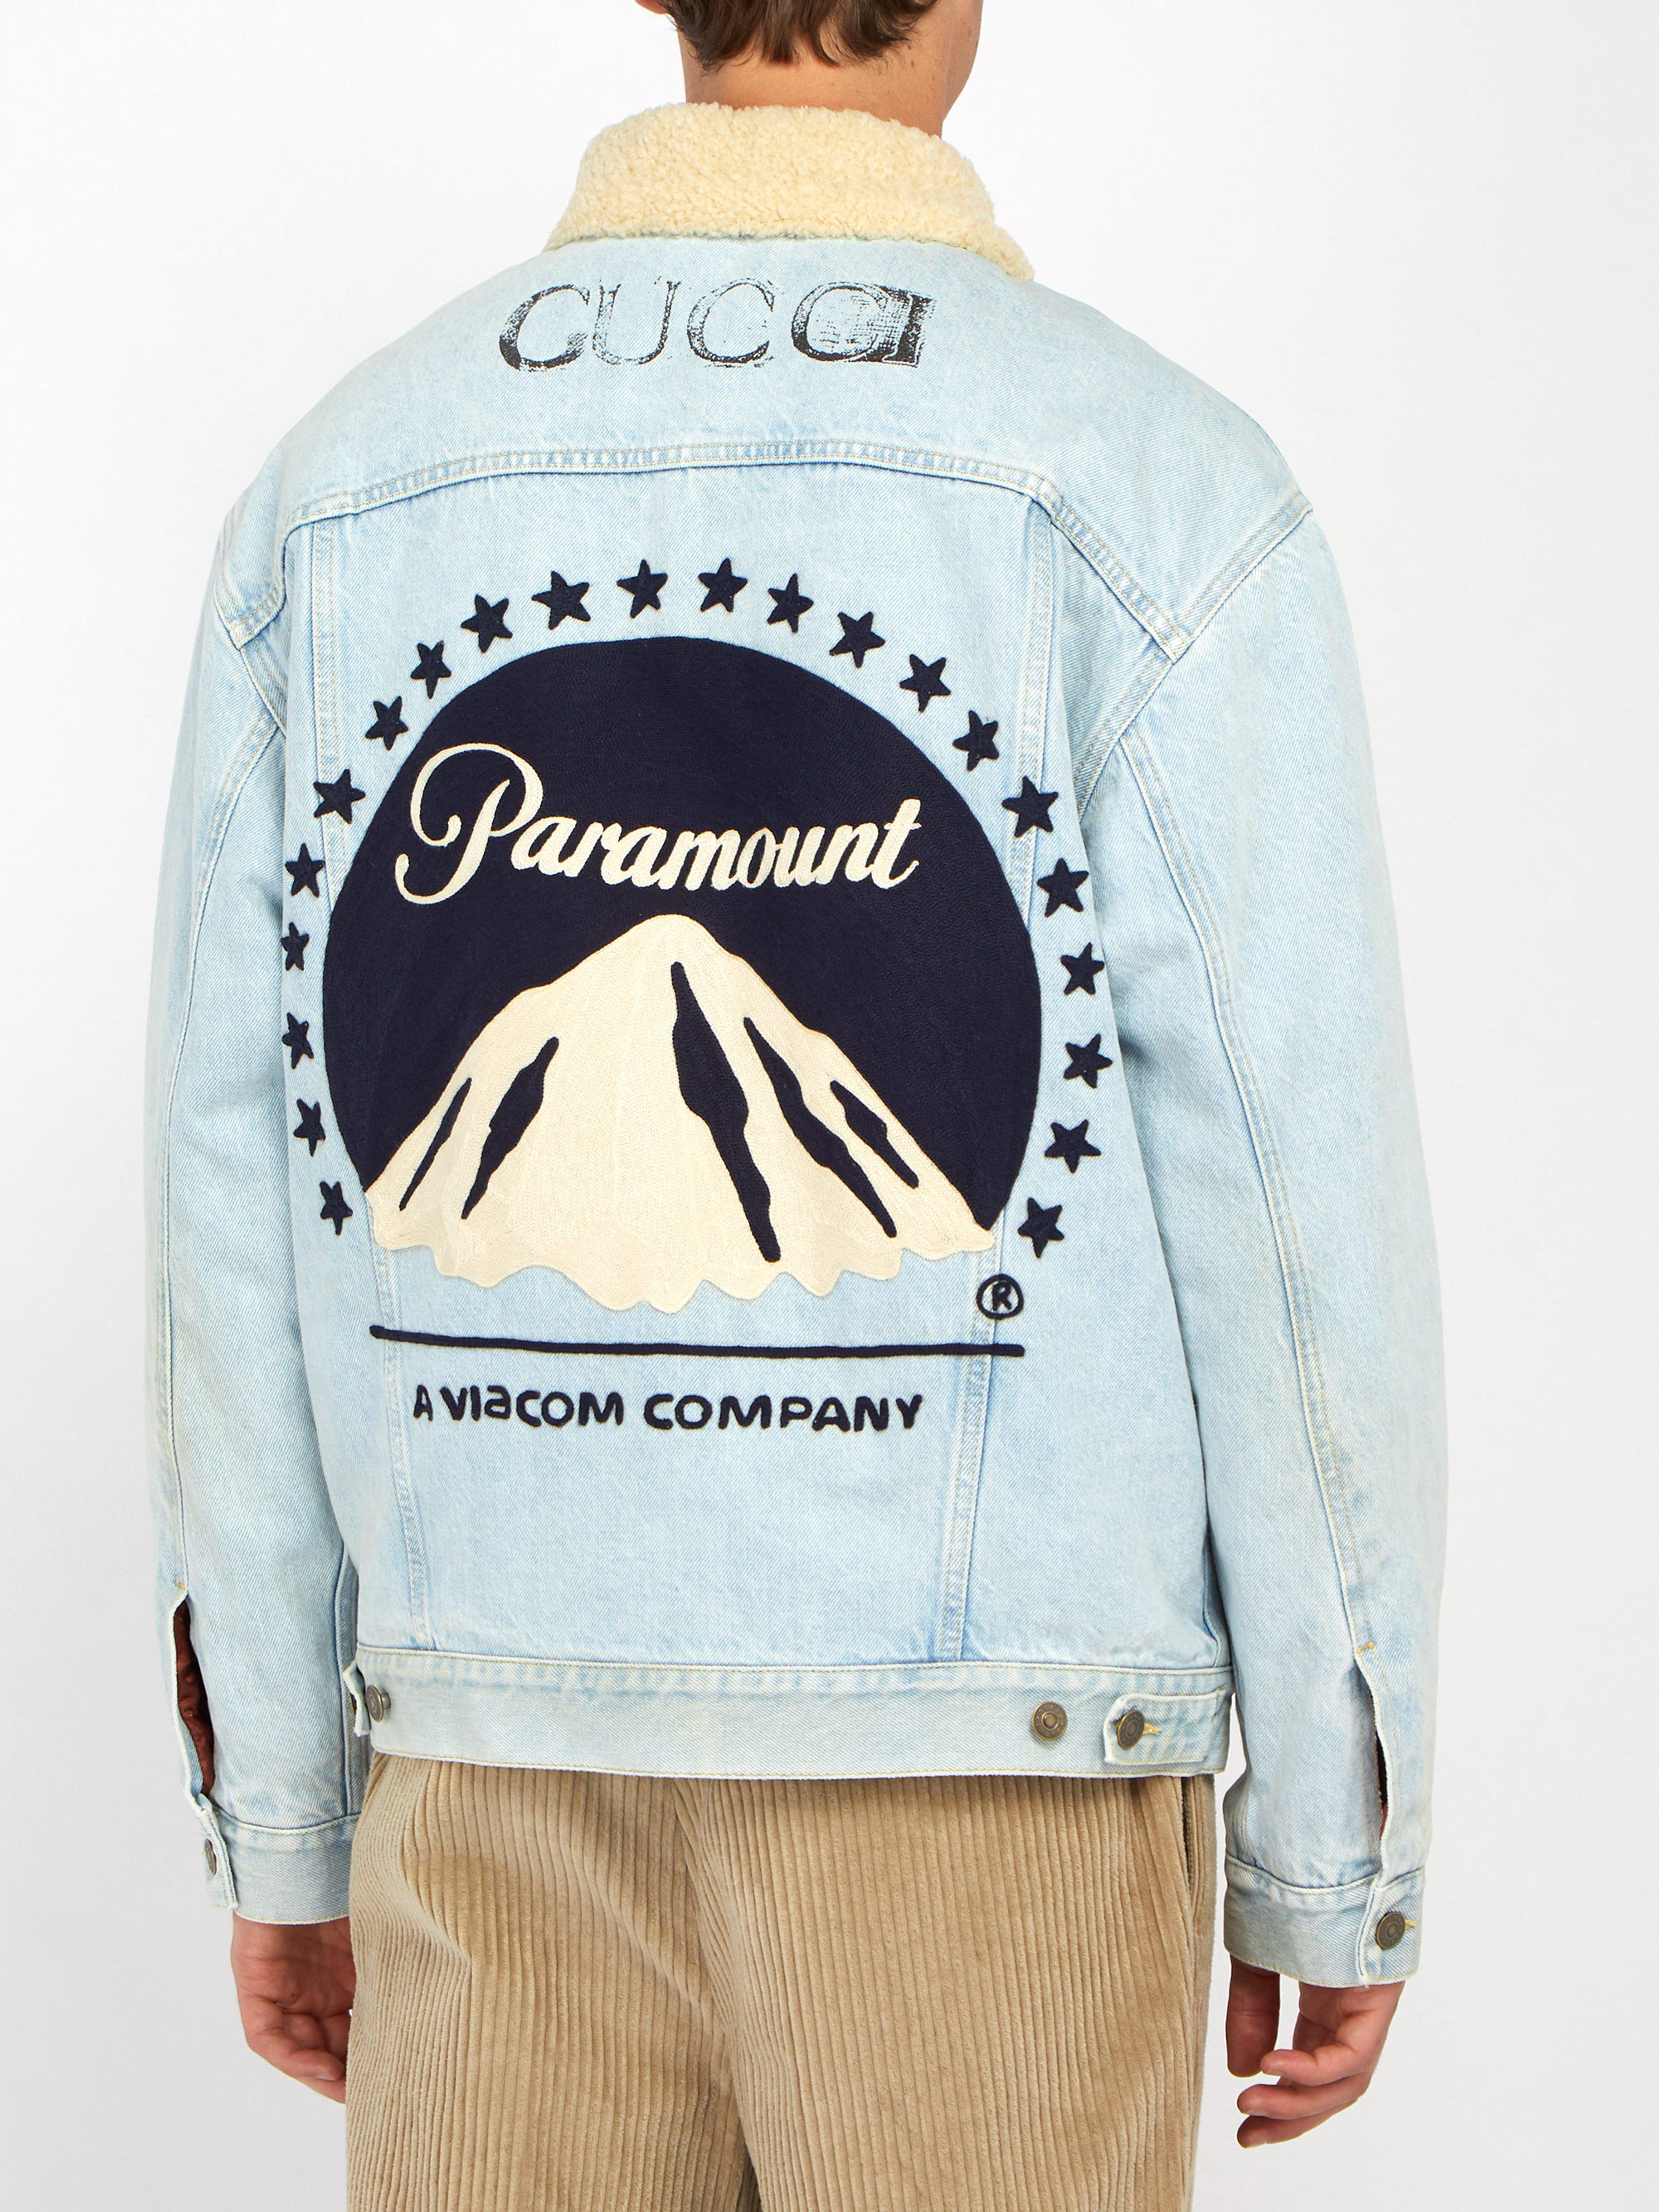 0387ad678 Gucci Paramount-embroidered Denim Jacket in Blue for Men - Lyst